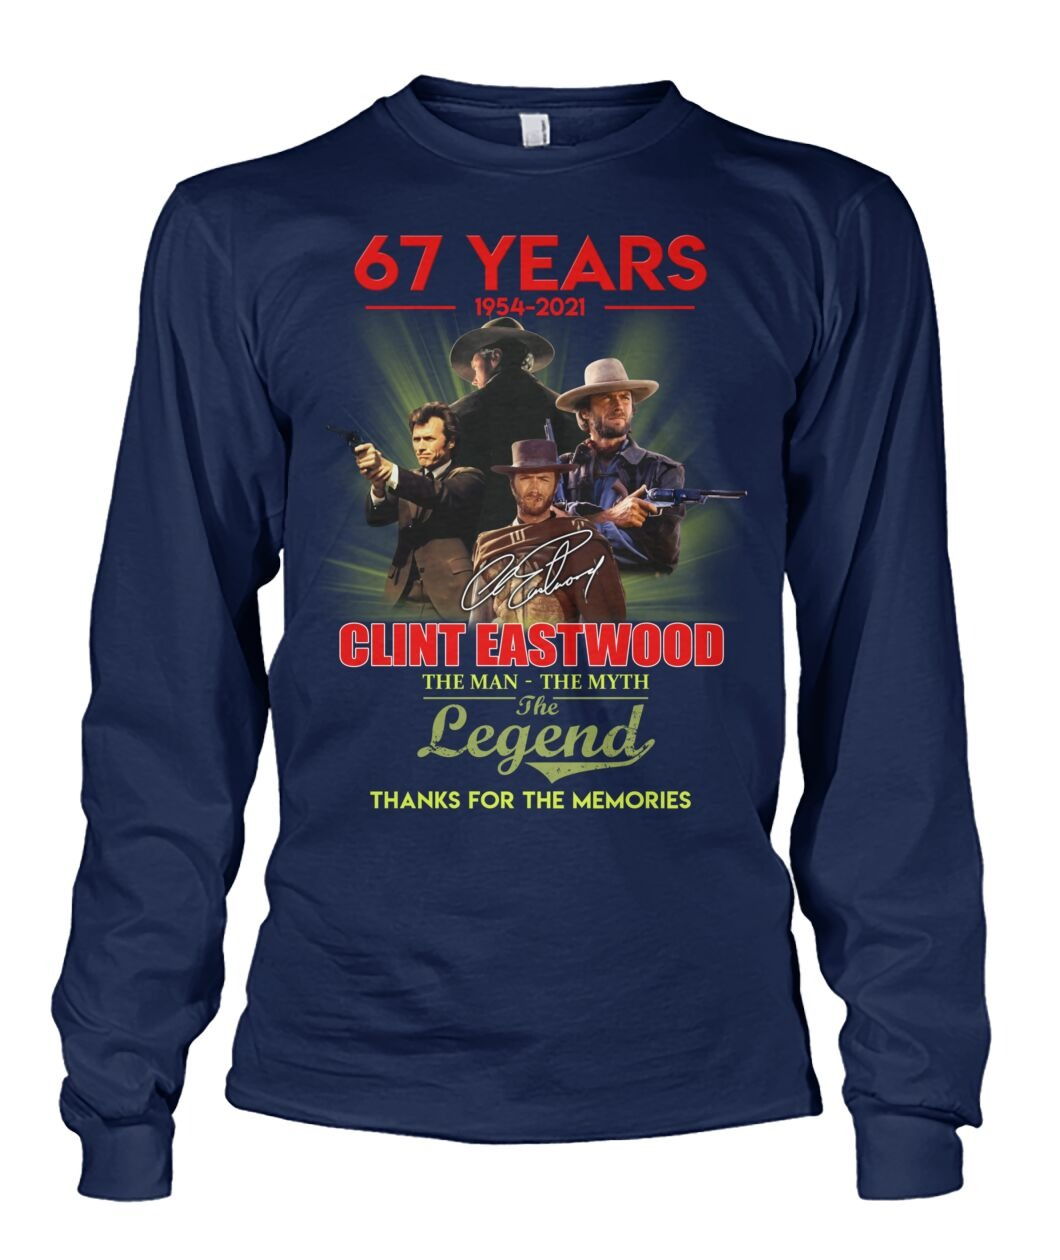 Clint Eastwood 67 years the man the myth the legend thanks for memories long sleeve